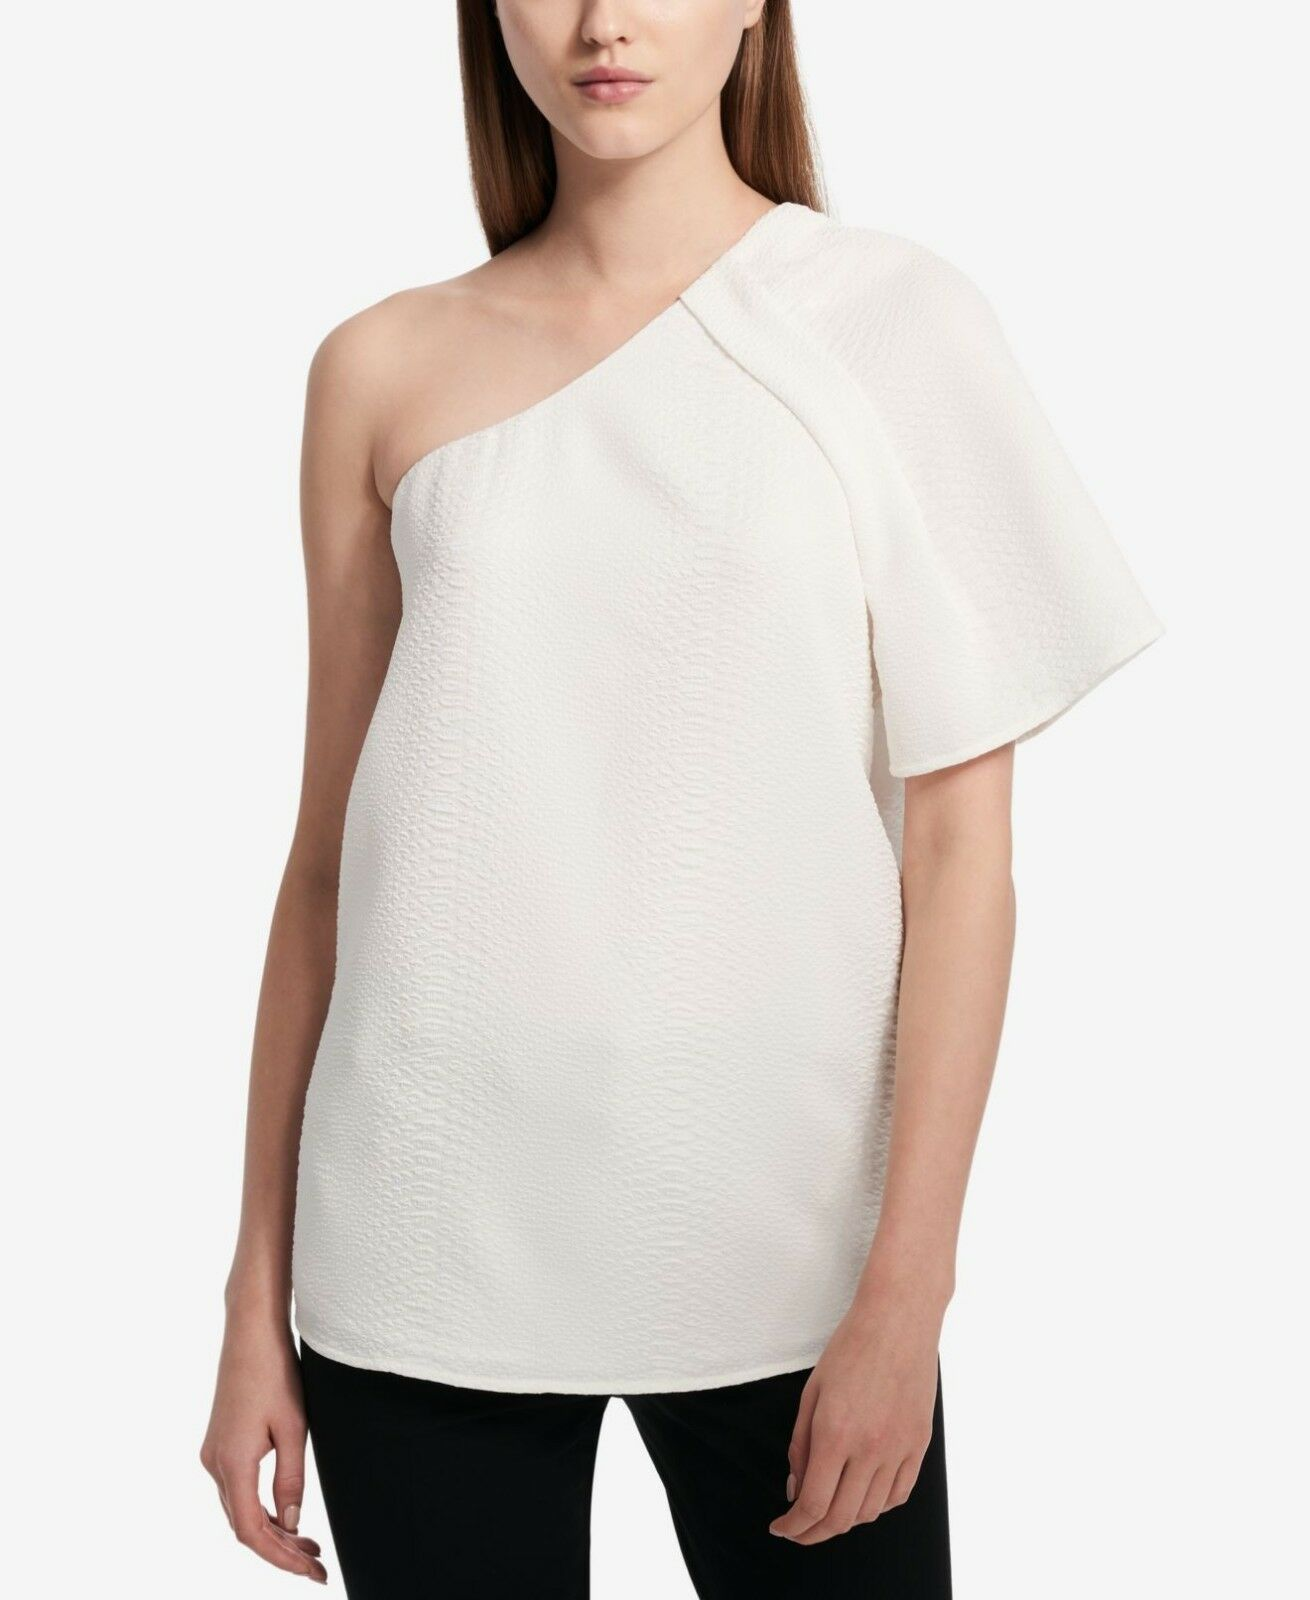 Primary image for Calvin Klein Womens Soft WhiteTextured One-Shoulder Asymmetrical Top Size M $79